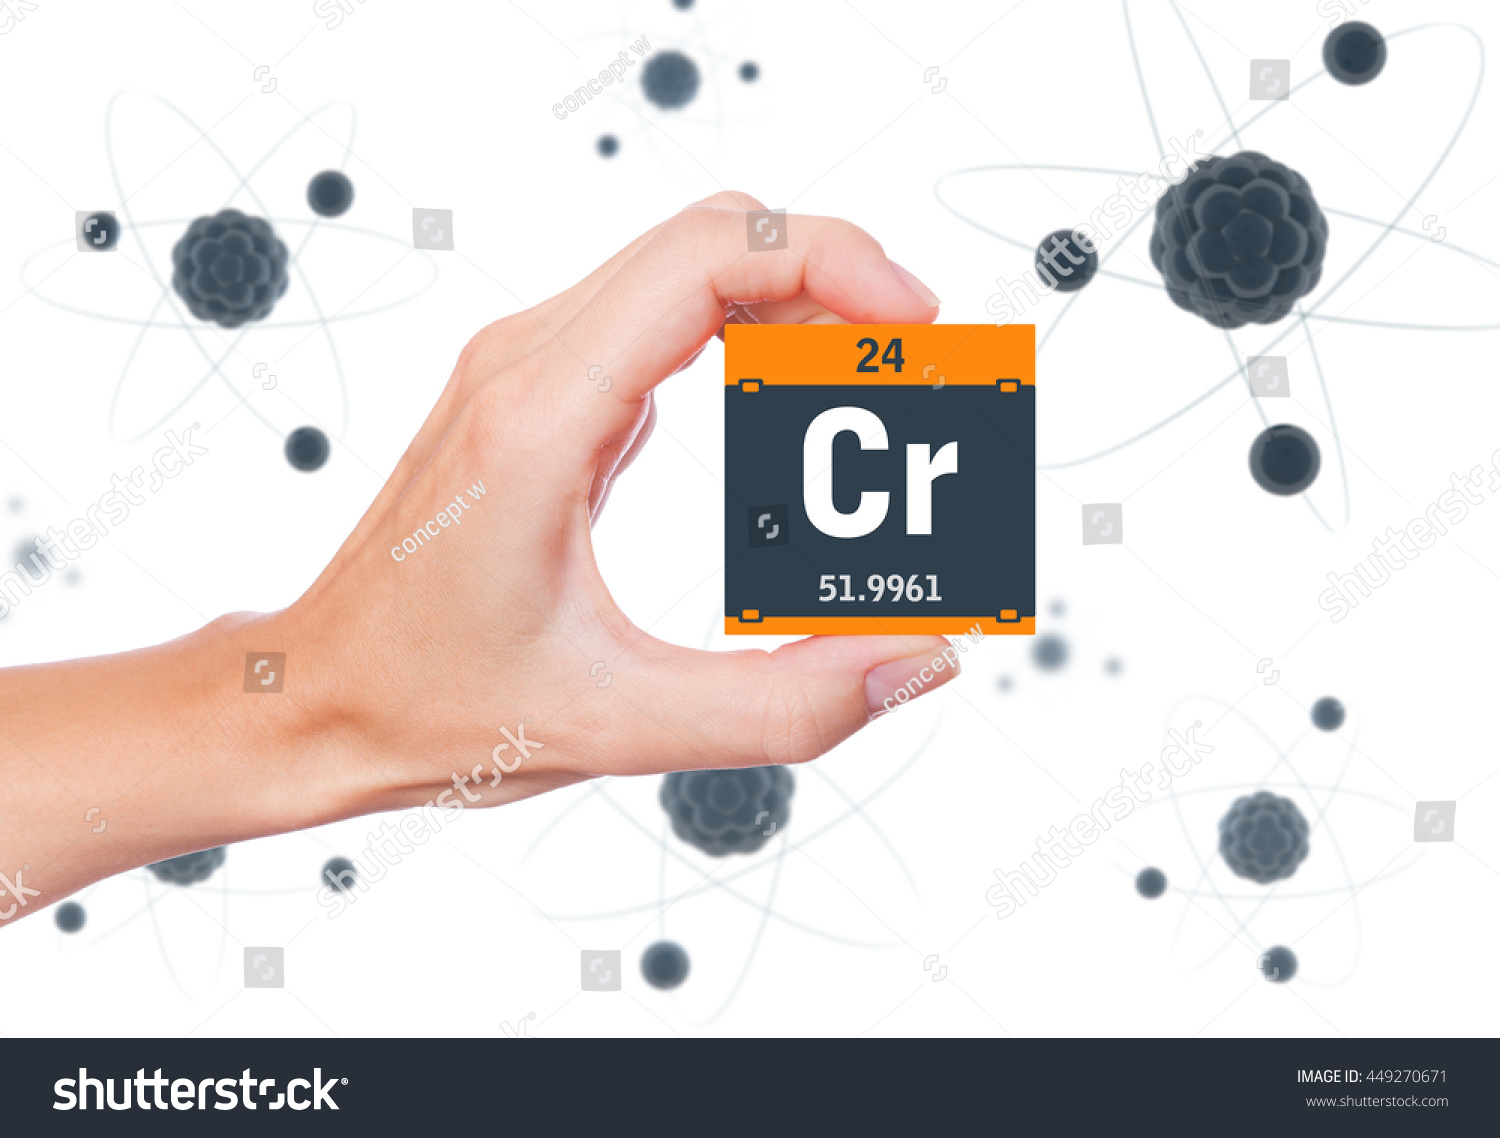 Chromium element symbol handheld atoms floating stock illustration chromium element symbol handheld atoms floating stock illustration 449270671 shutterstock buycottarizona